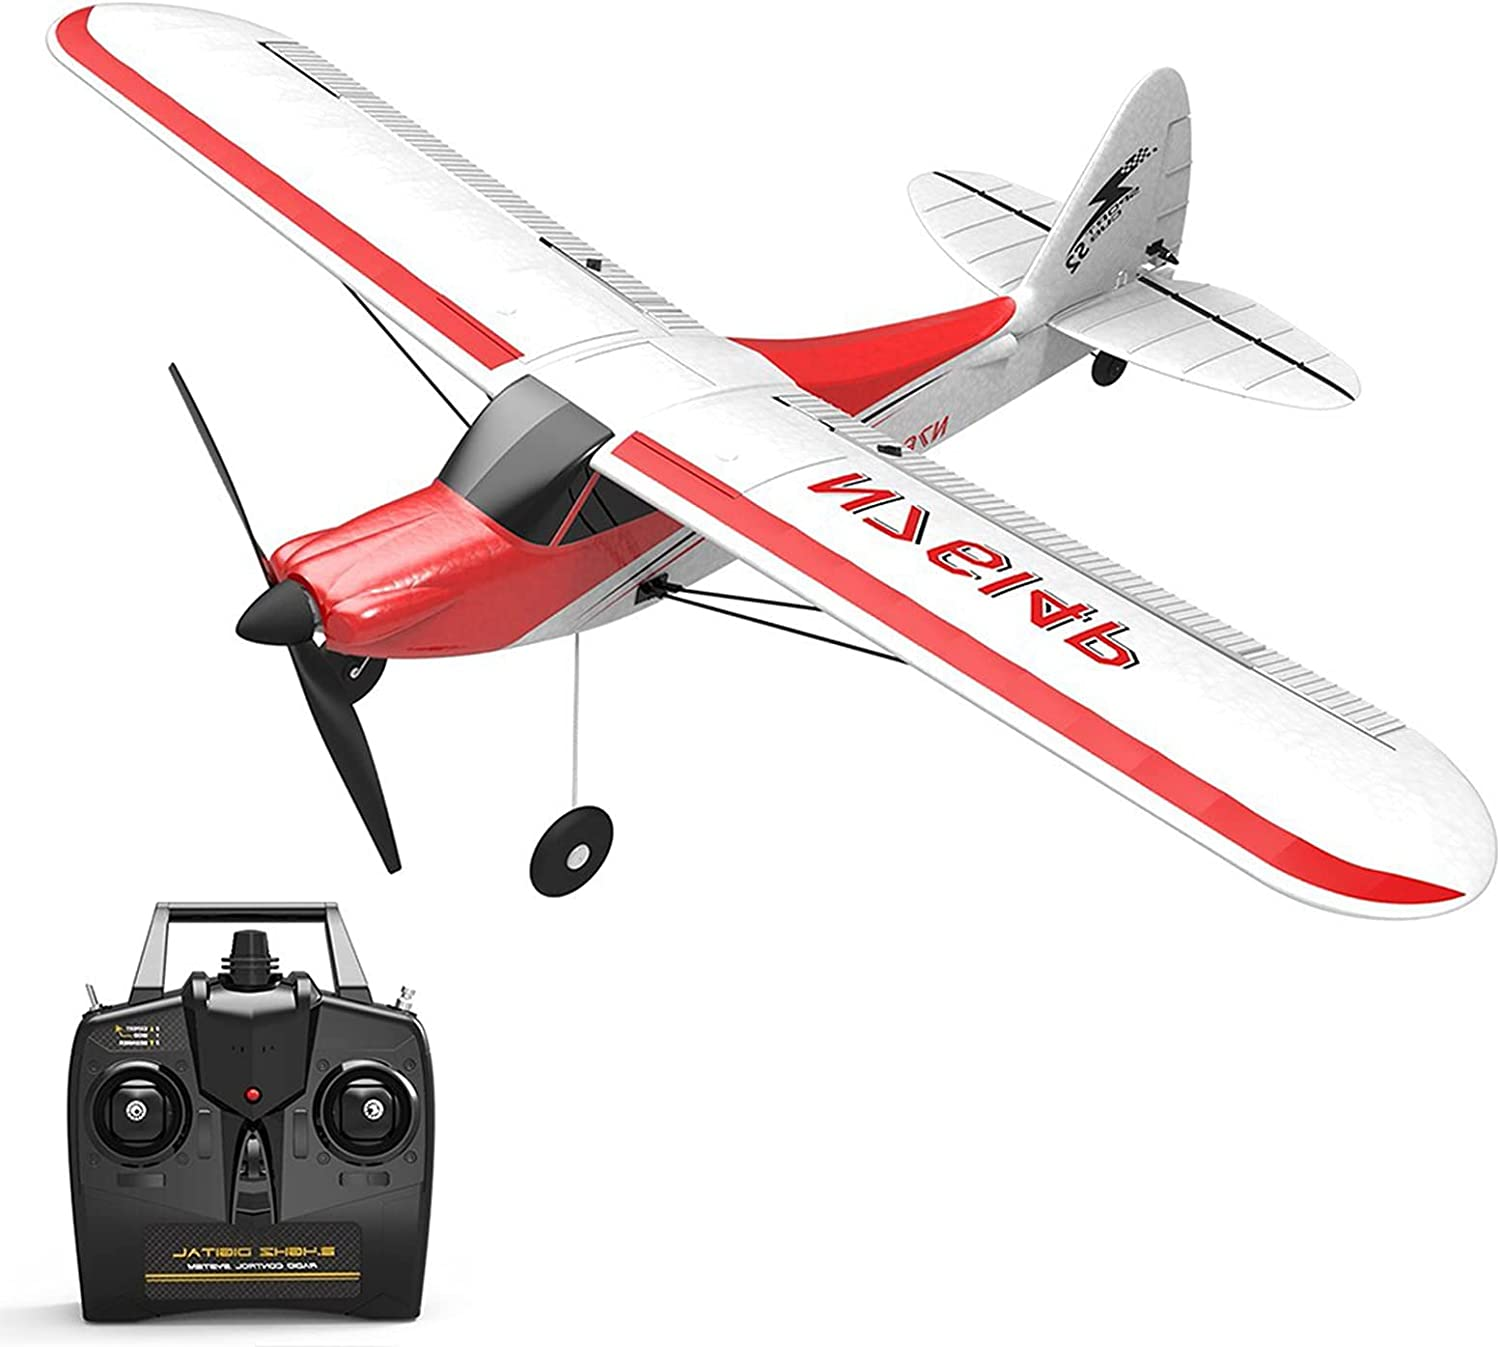 LYBOHO 4 Channel Remote Control Airplane We OFFer at cheap prices Aircr RC Plane OFFicial store Perfect